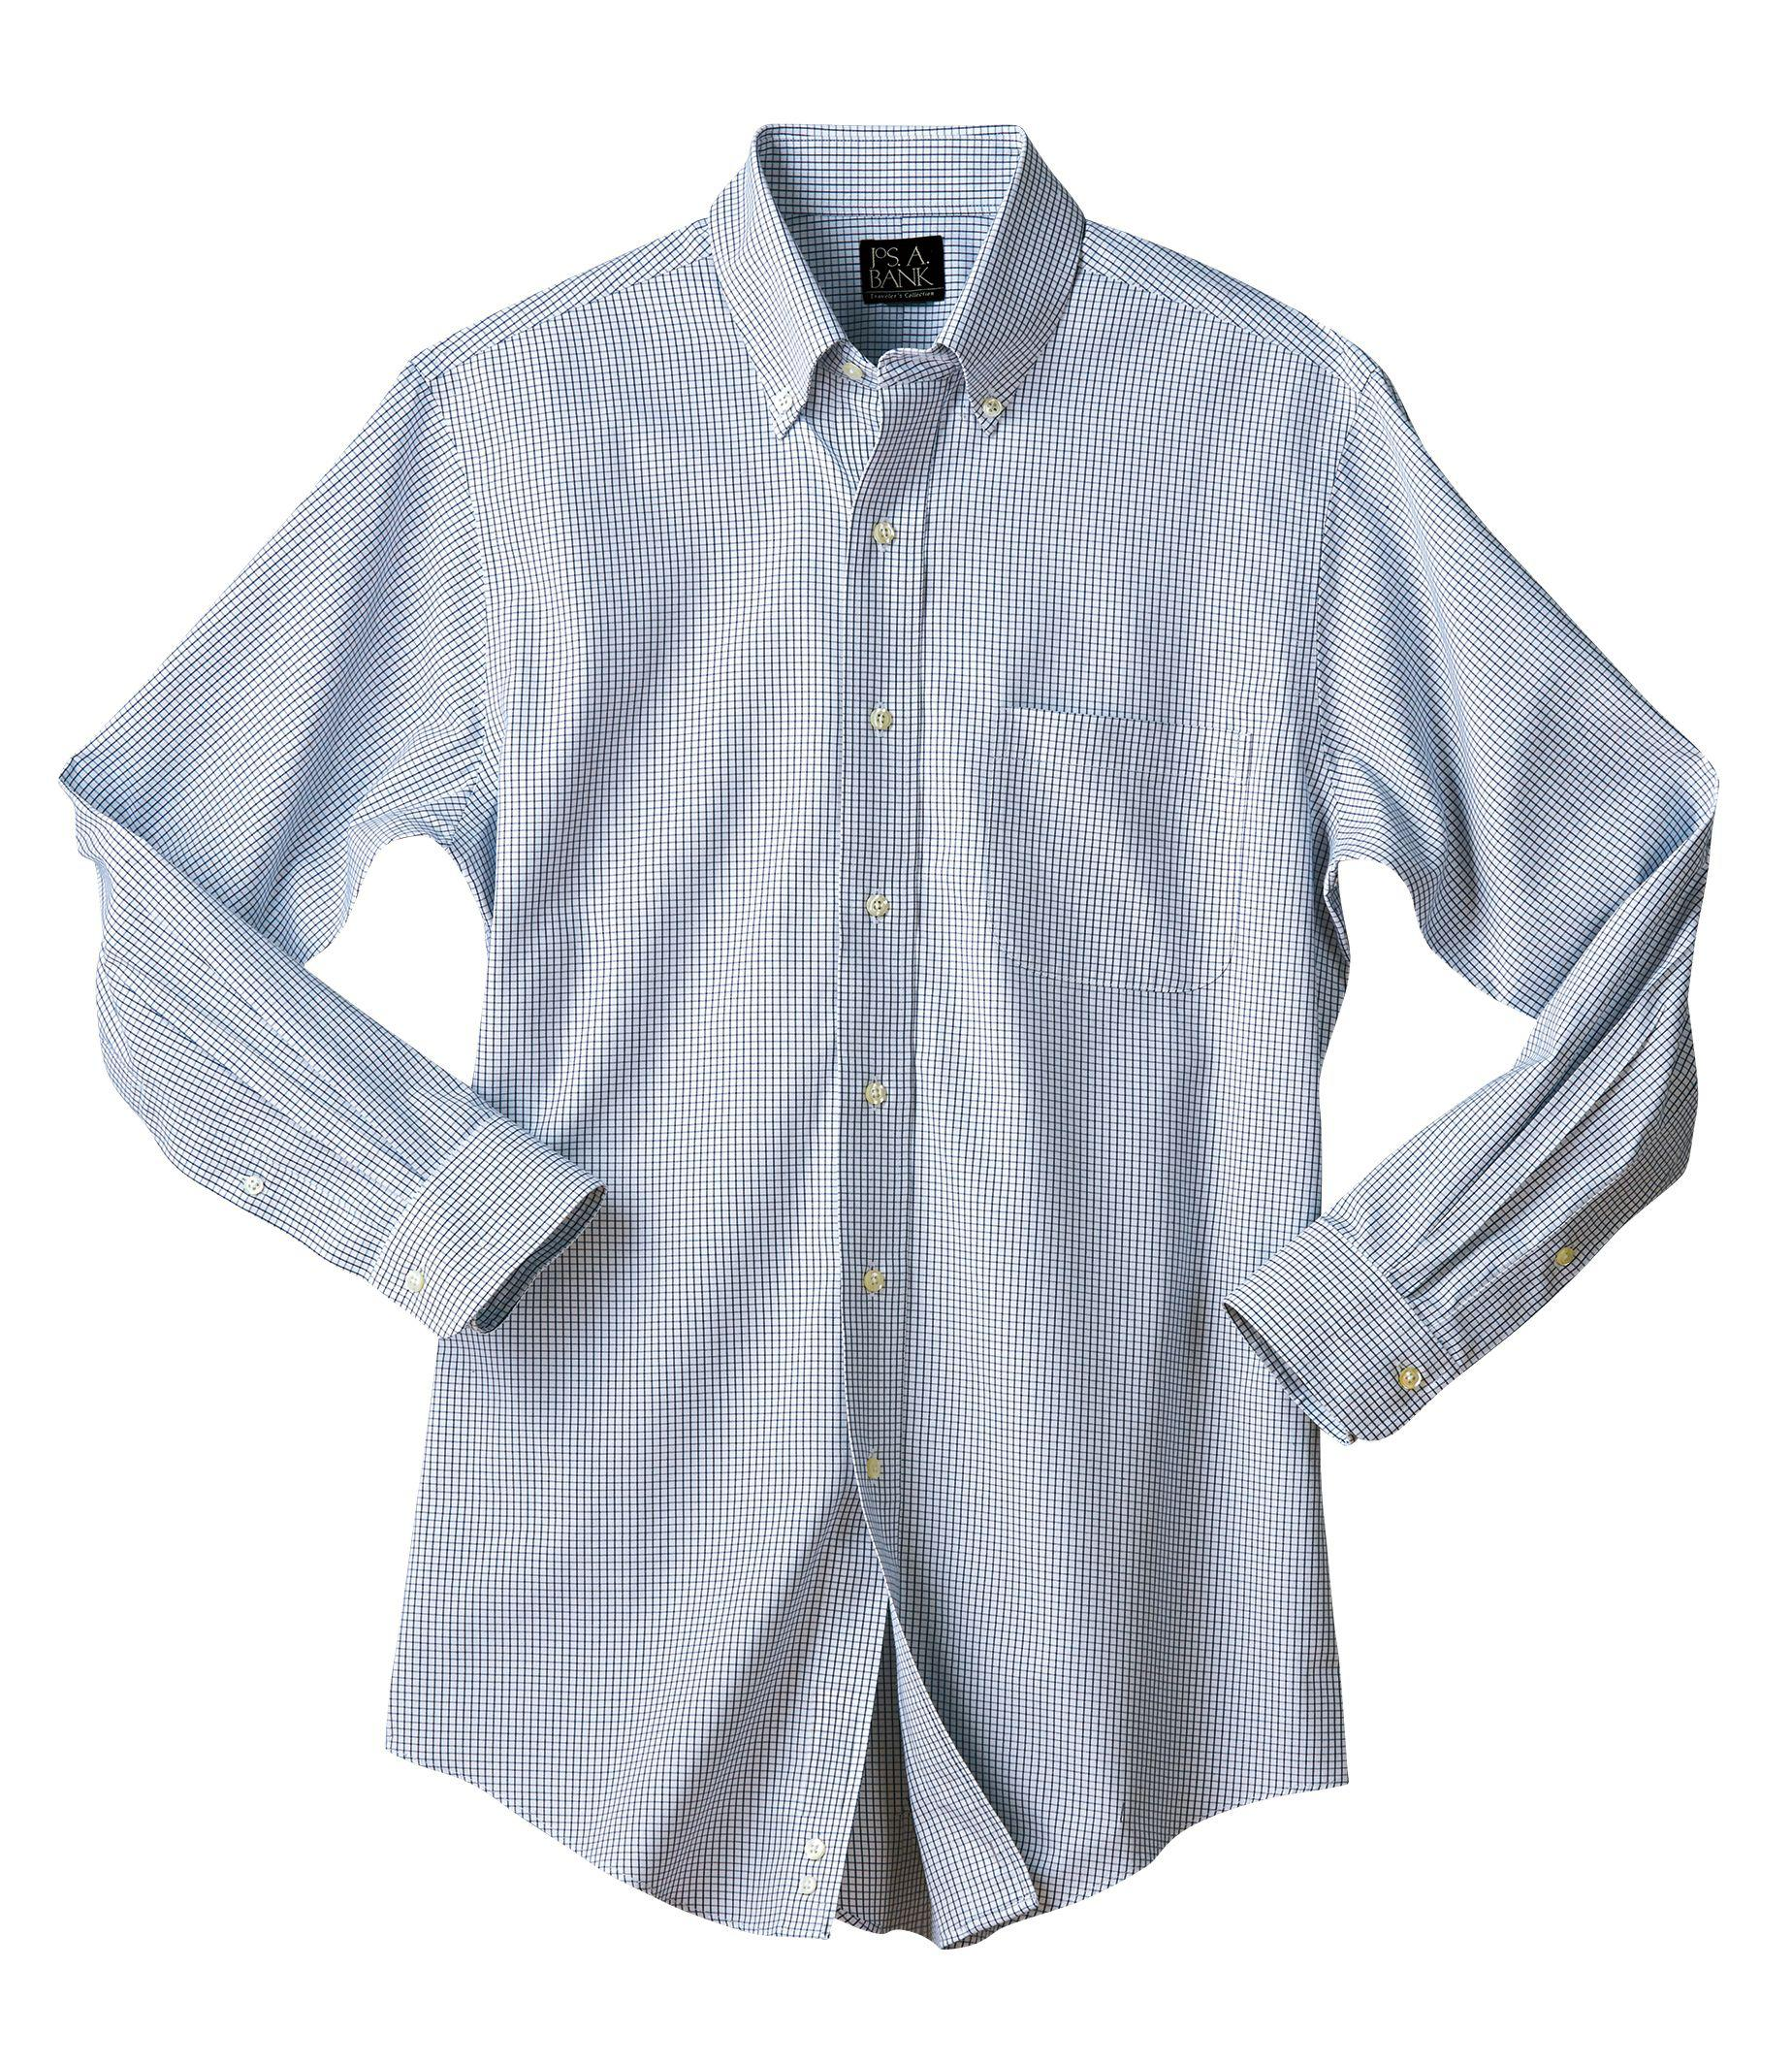 Jos a bank traveler collection tailored fit button down for Tall collar dress shirts